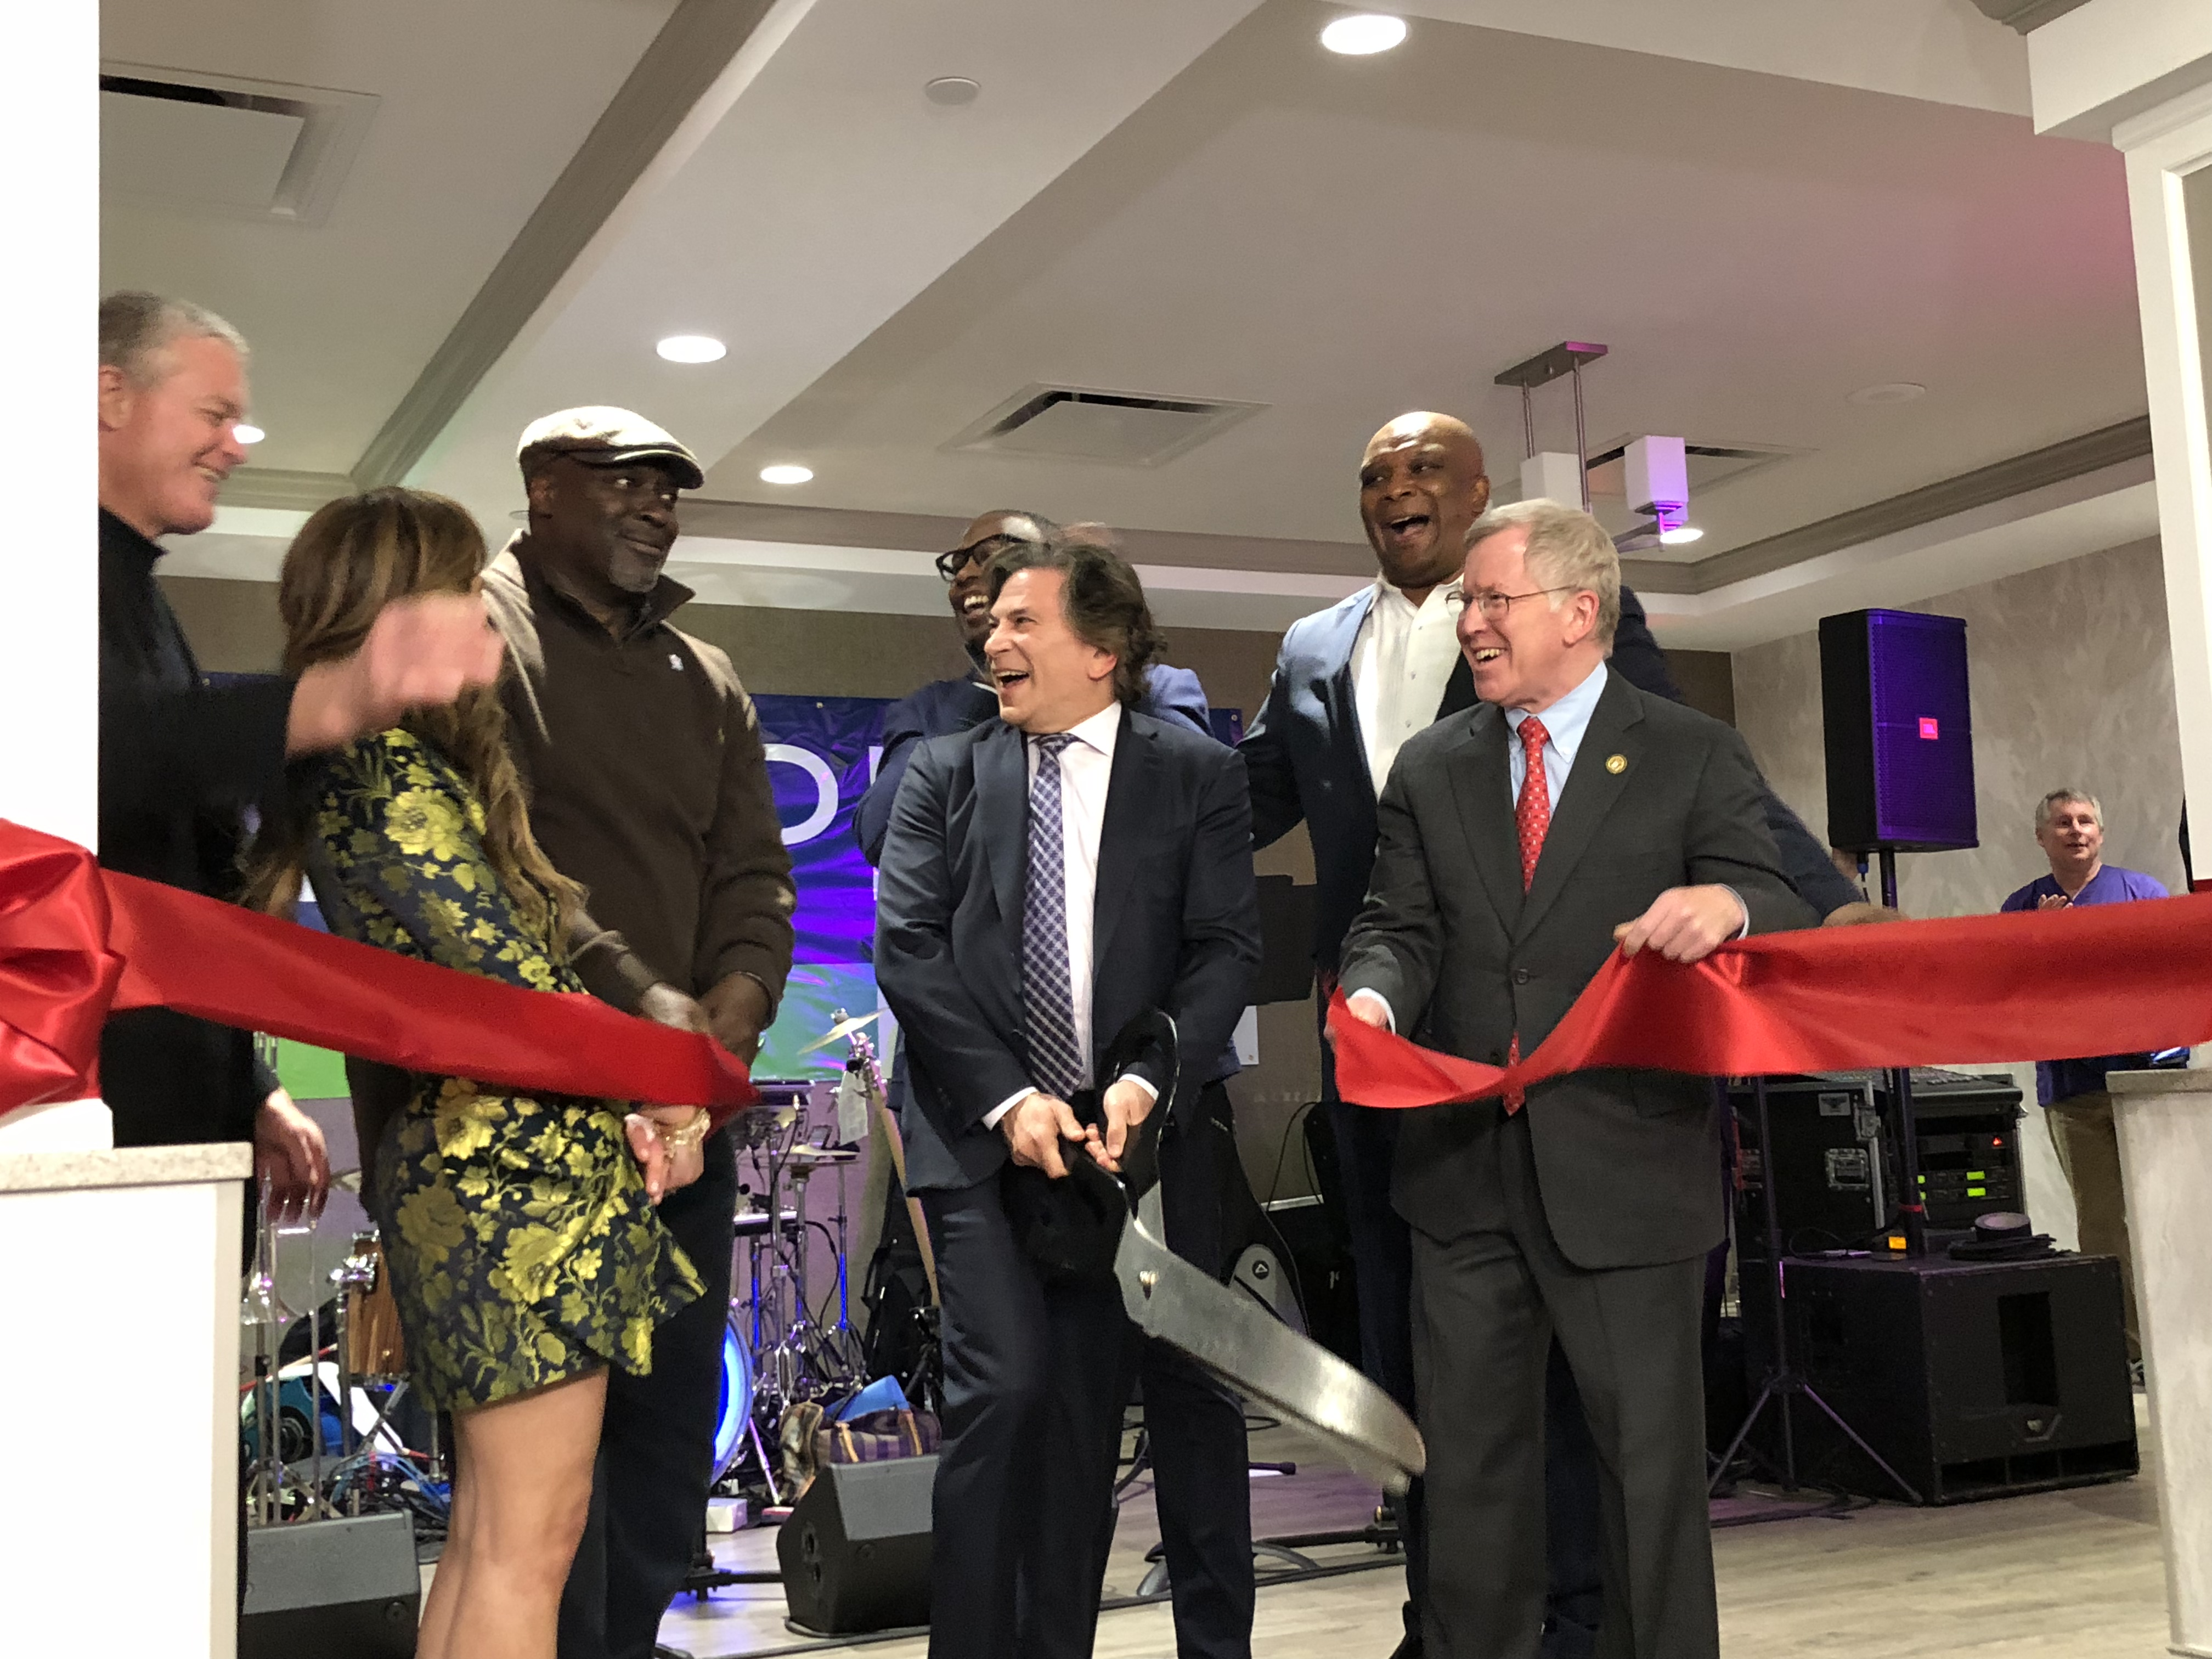 CareOne Celebrates the Grand Opening of Harmony Village at Paramus